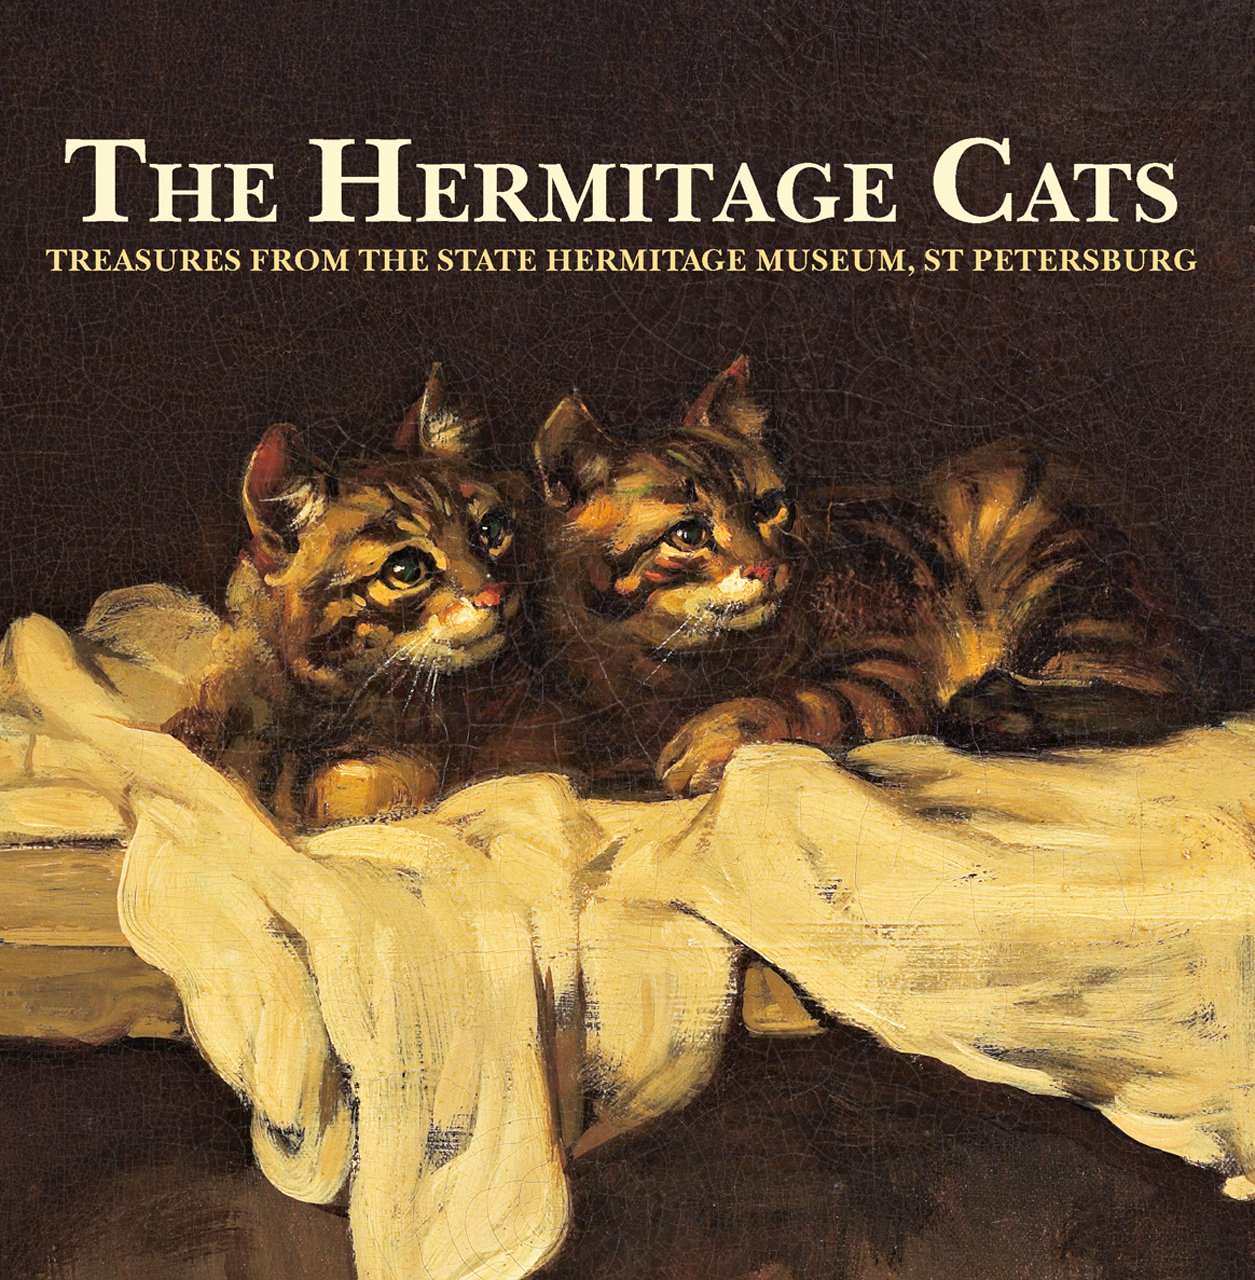 The Hermitage Cats Treasures From The State Hermitage Museum St Petersburg Museum The Hermitage 9781910065662 Amazon Com Books